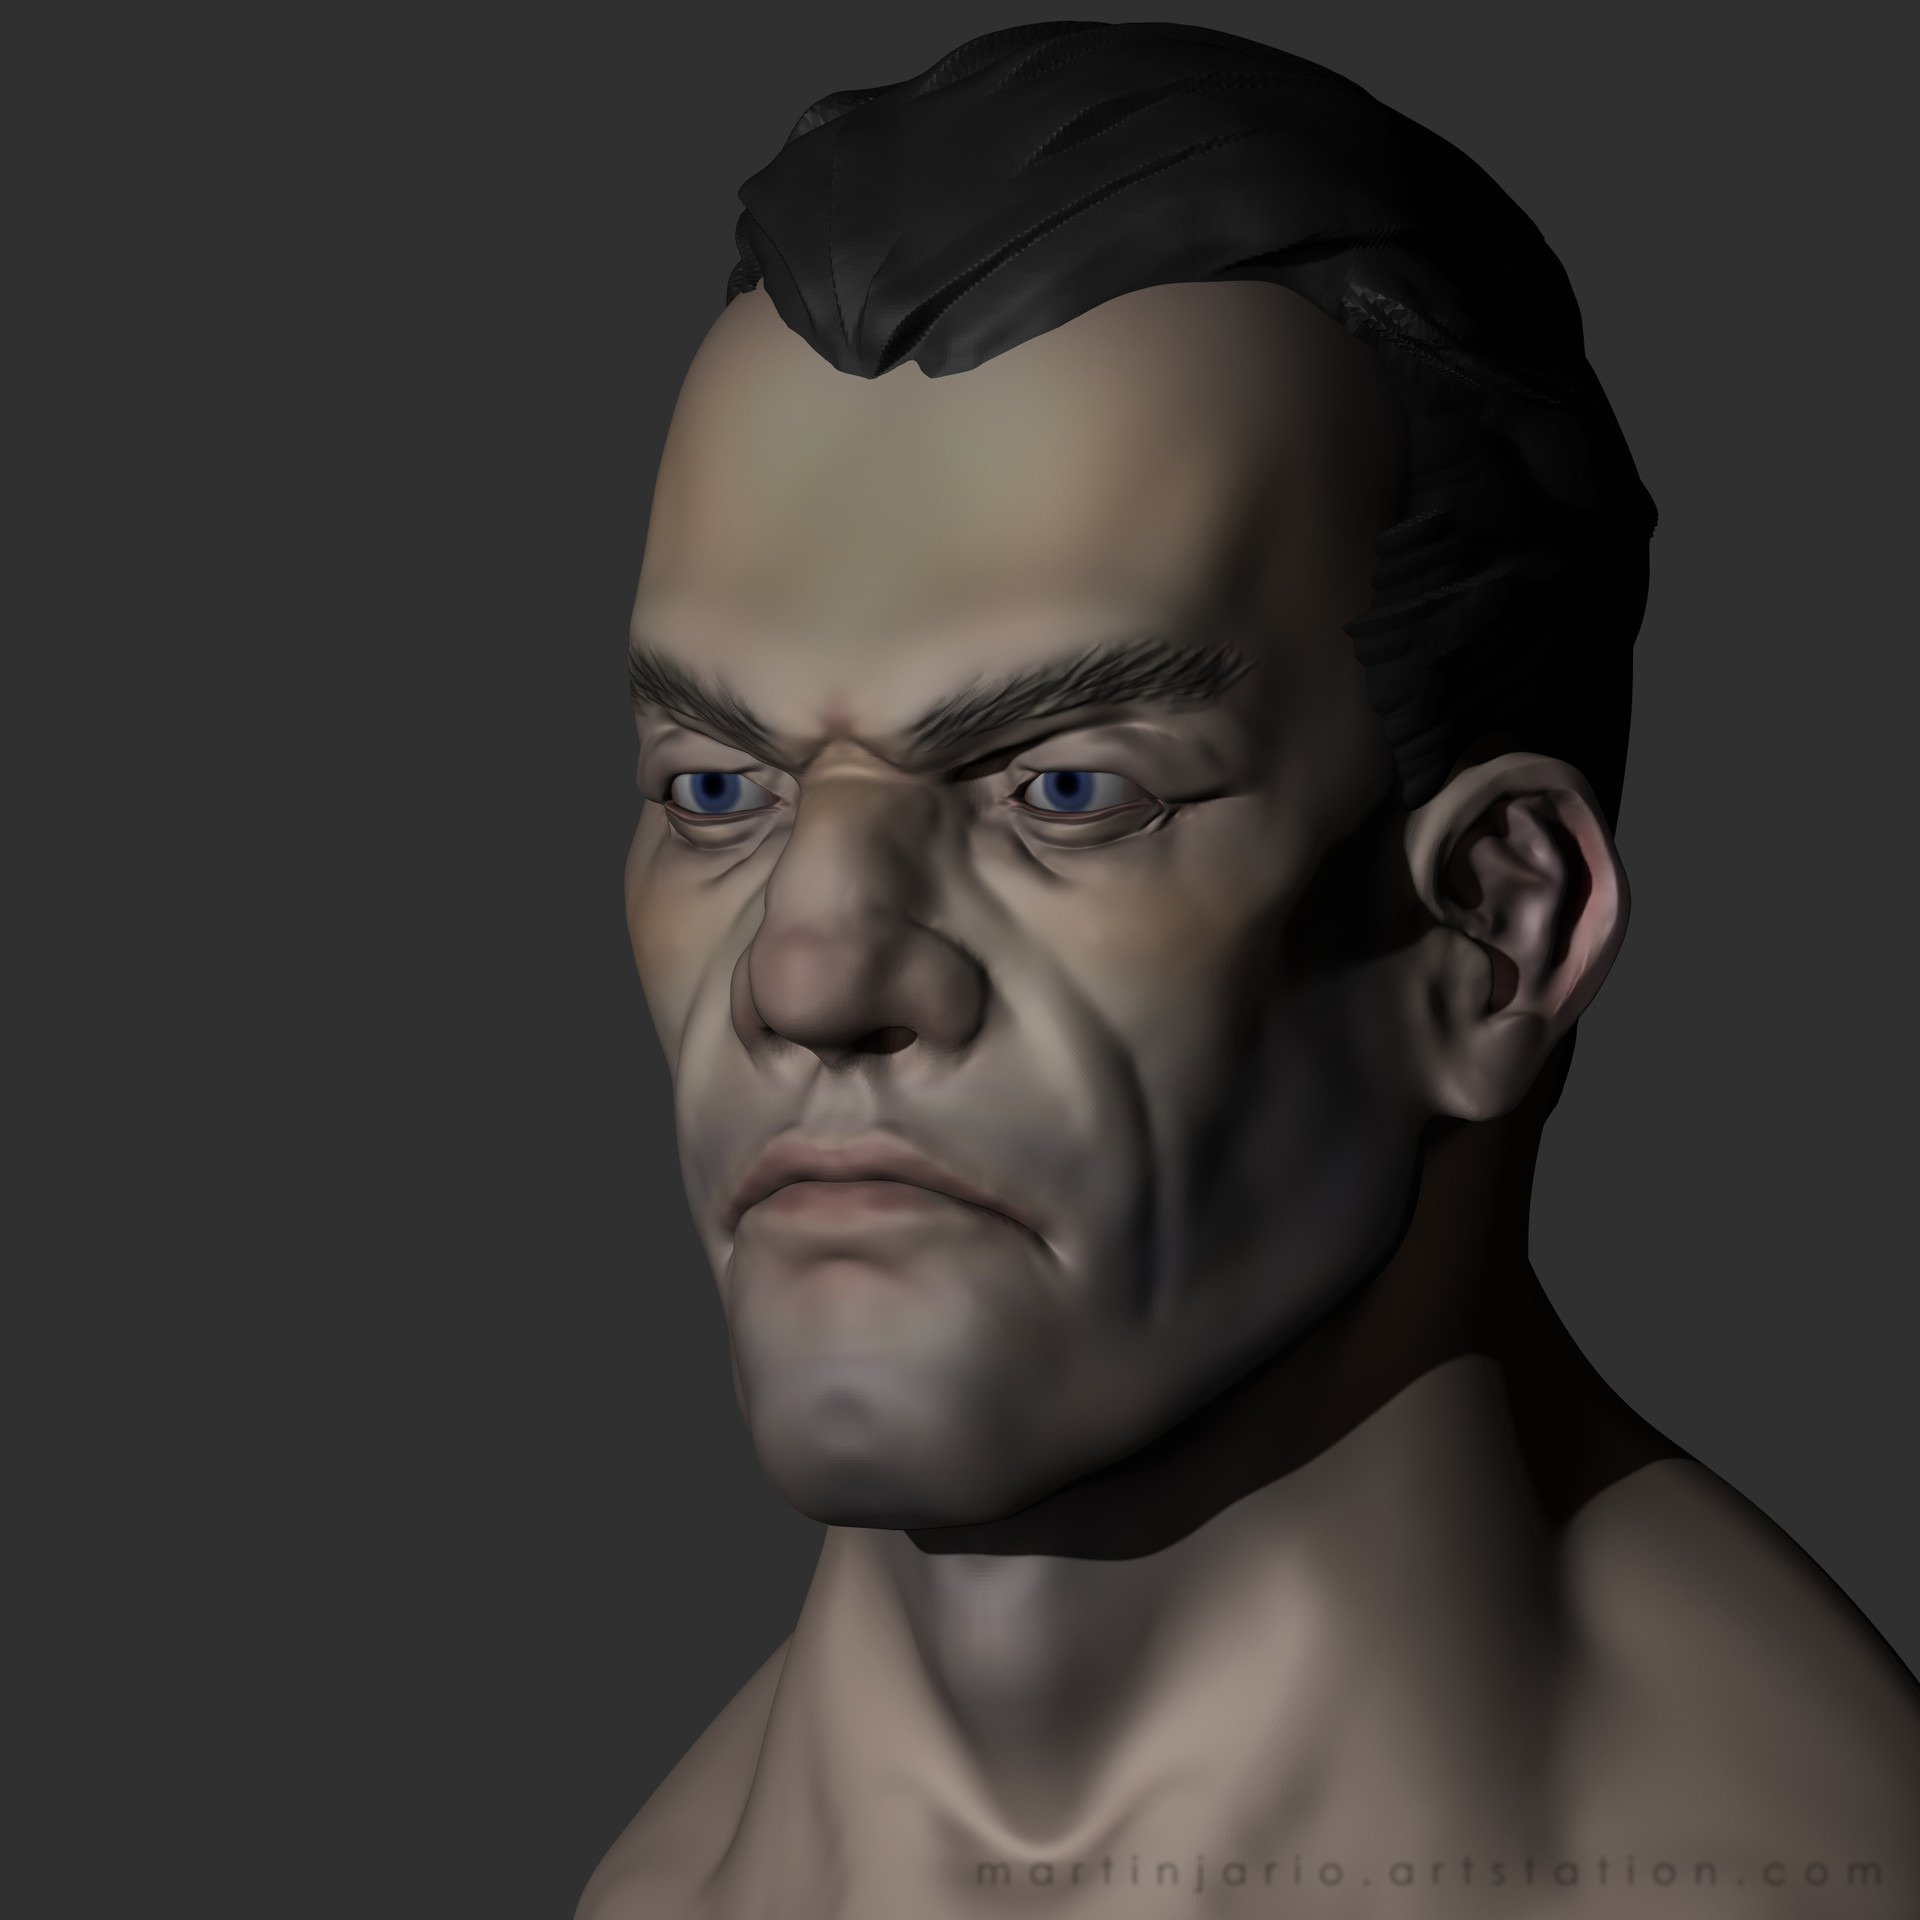 Martin jario martinjario wip dishonored 18